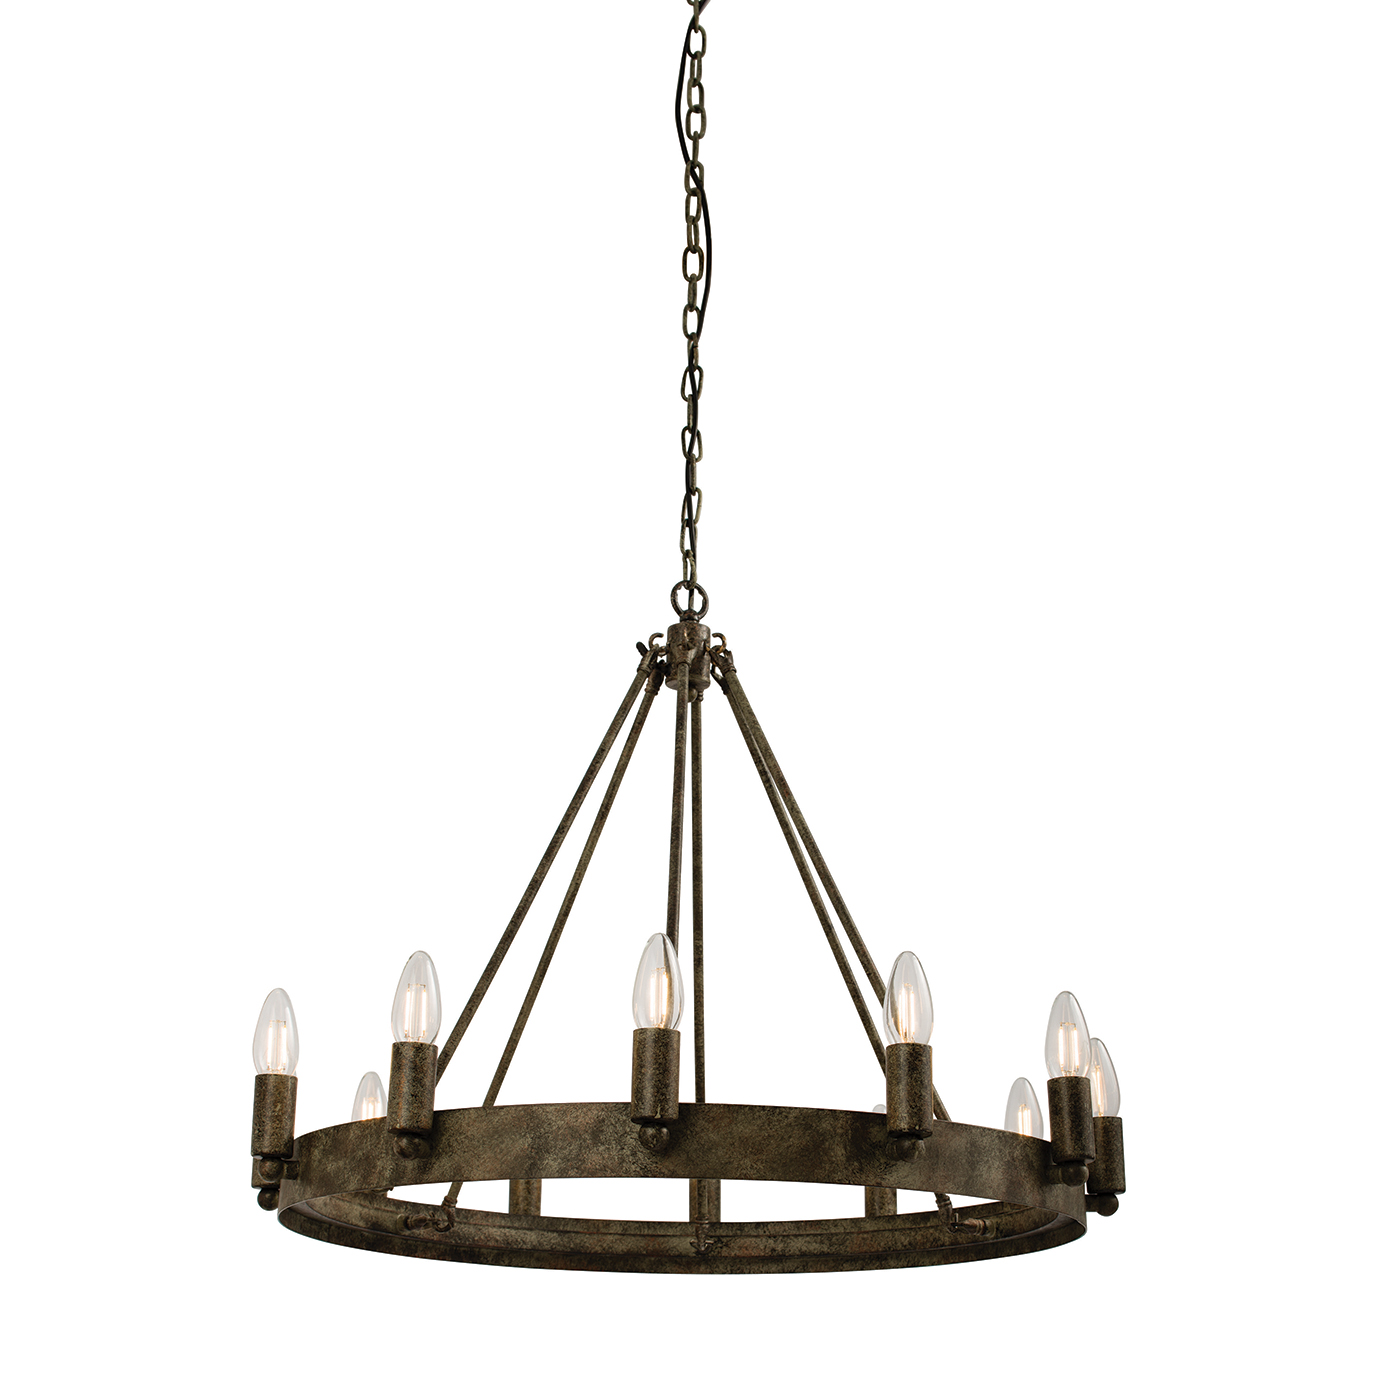 Endon Chevalier chandelier 12x 60W Aged metal effect paint